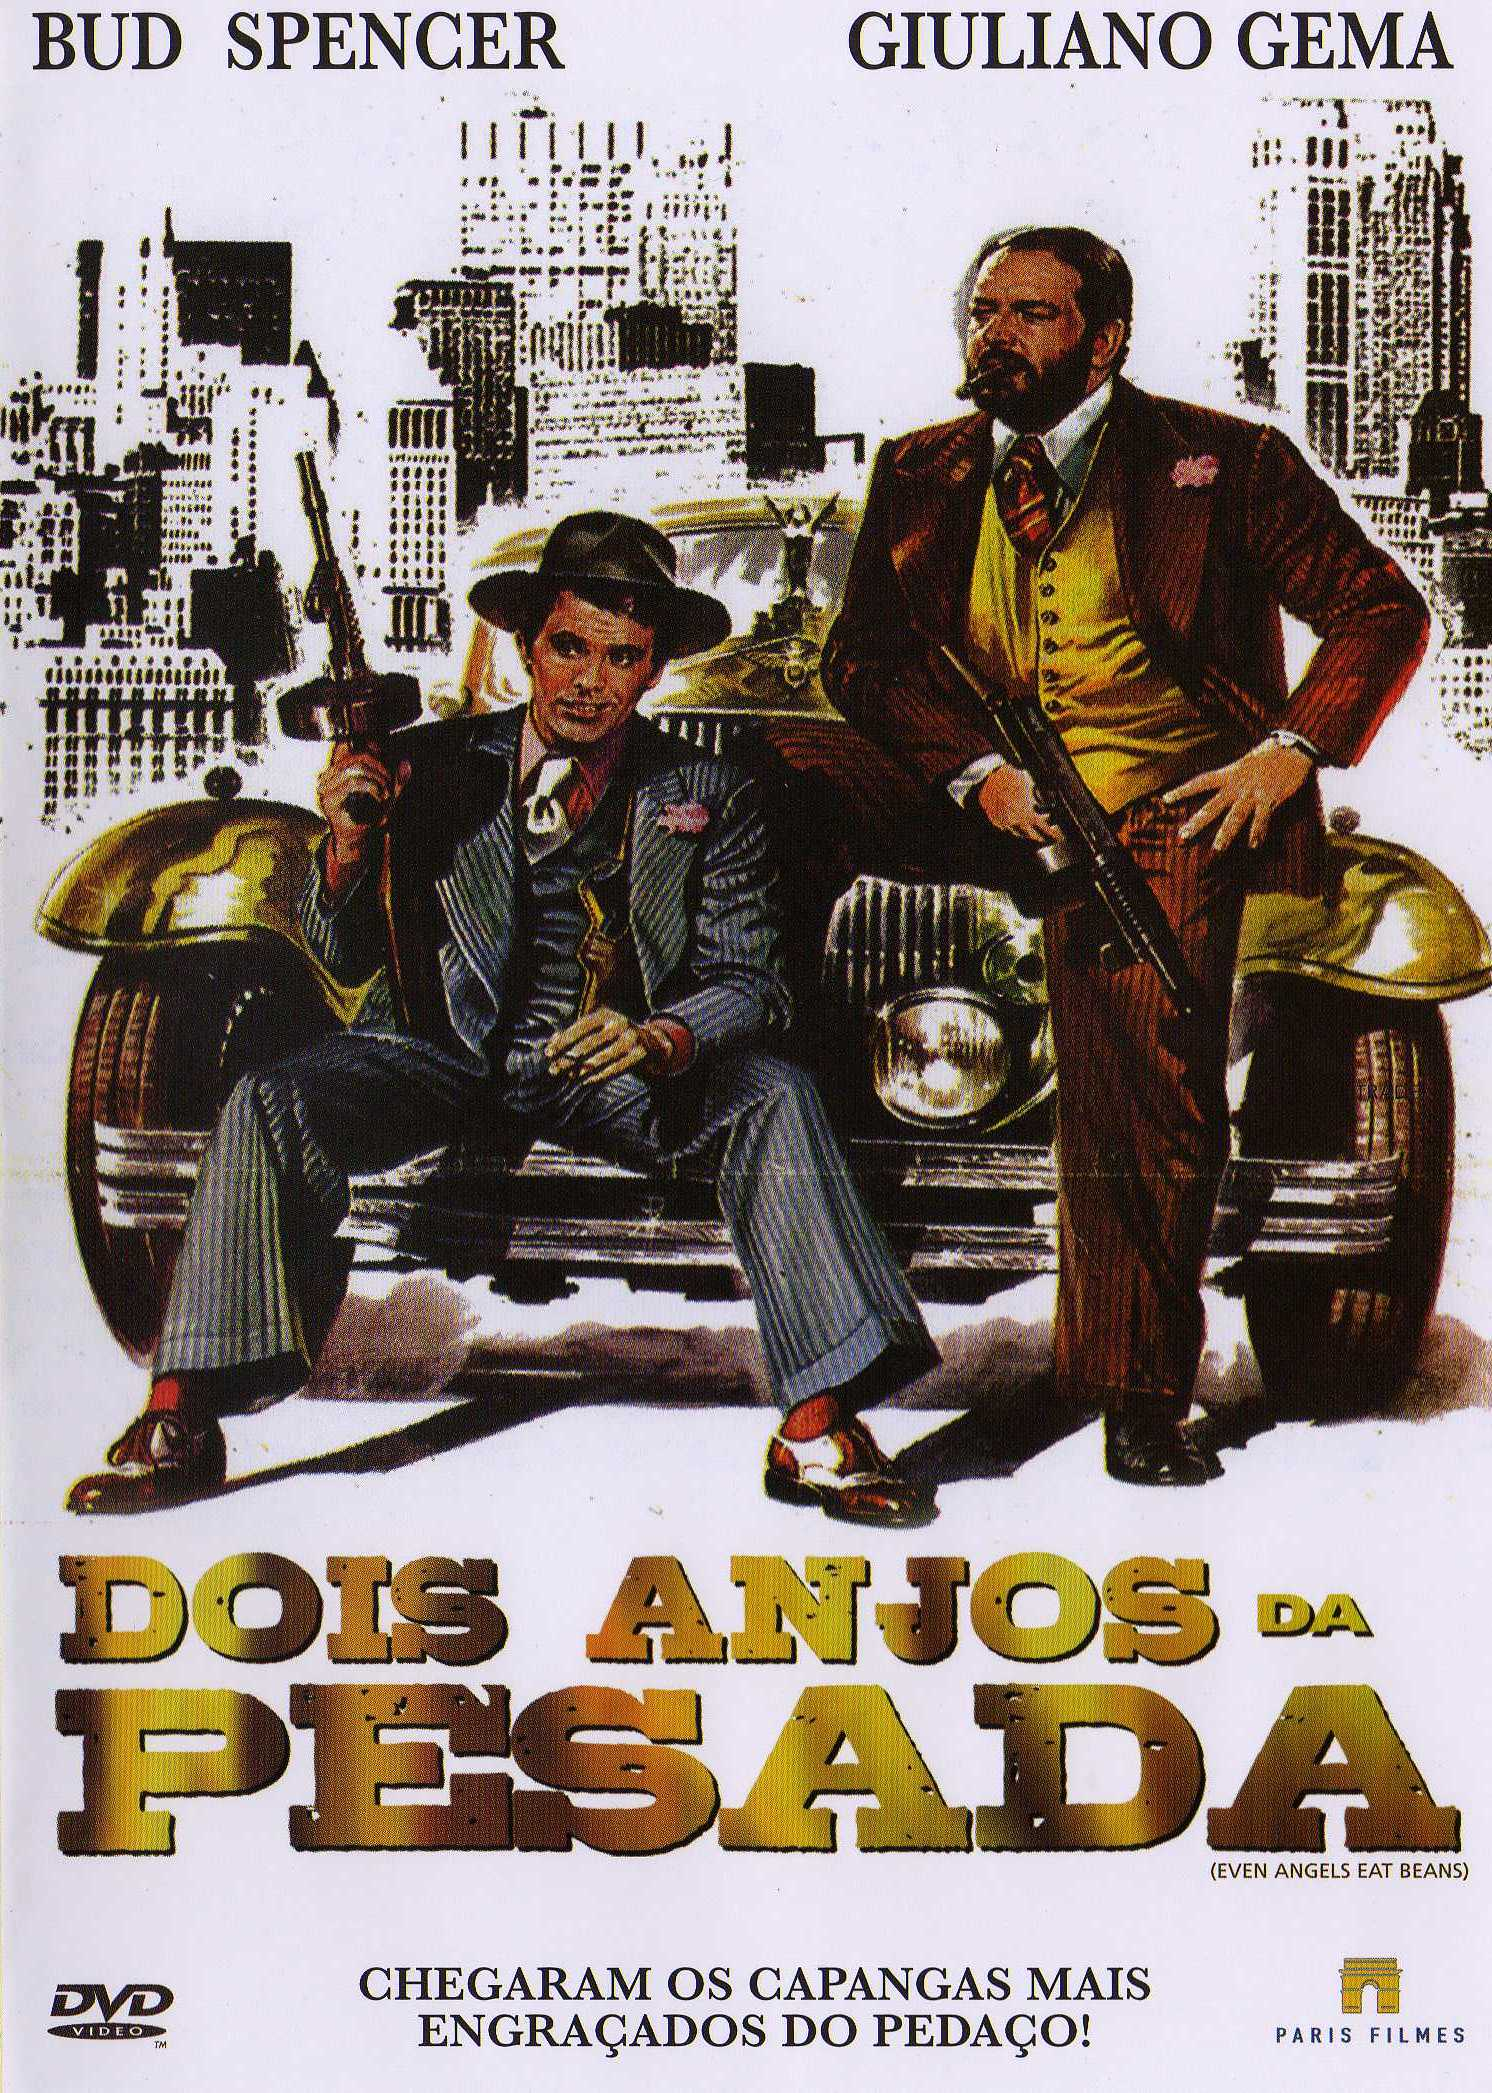 Filmes Bud Spencer E Terence Hill Dublado with dvd california -